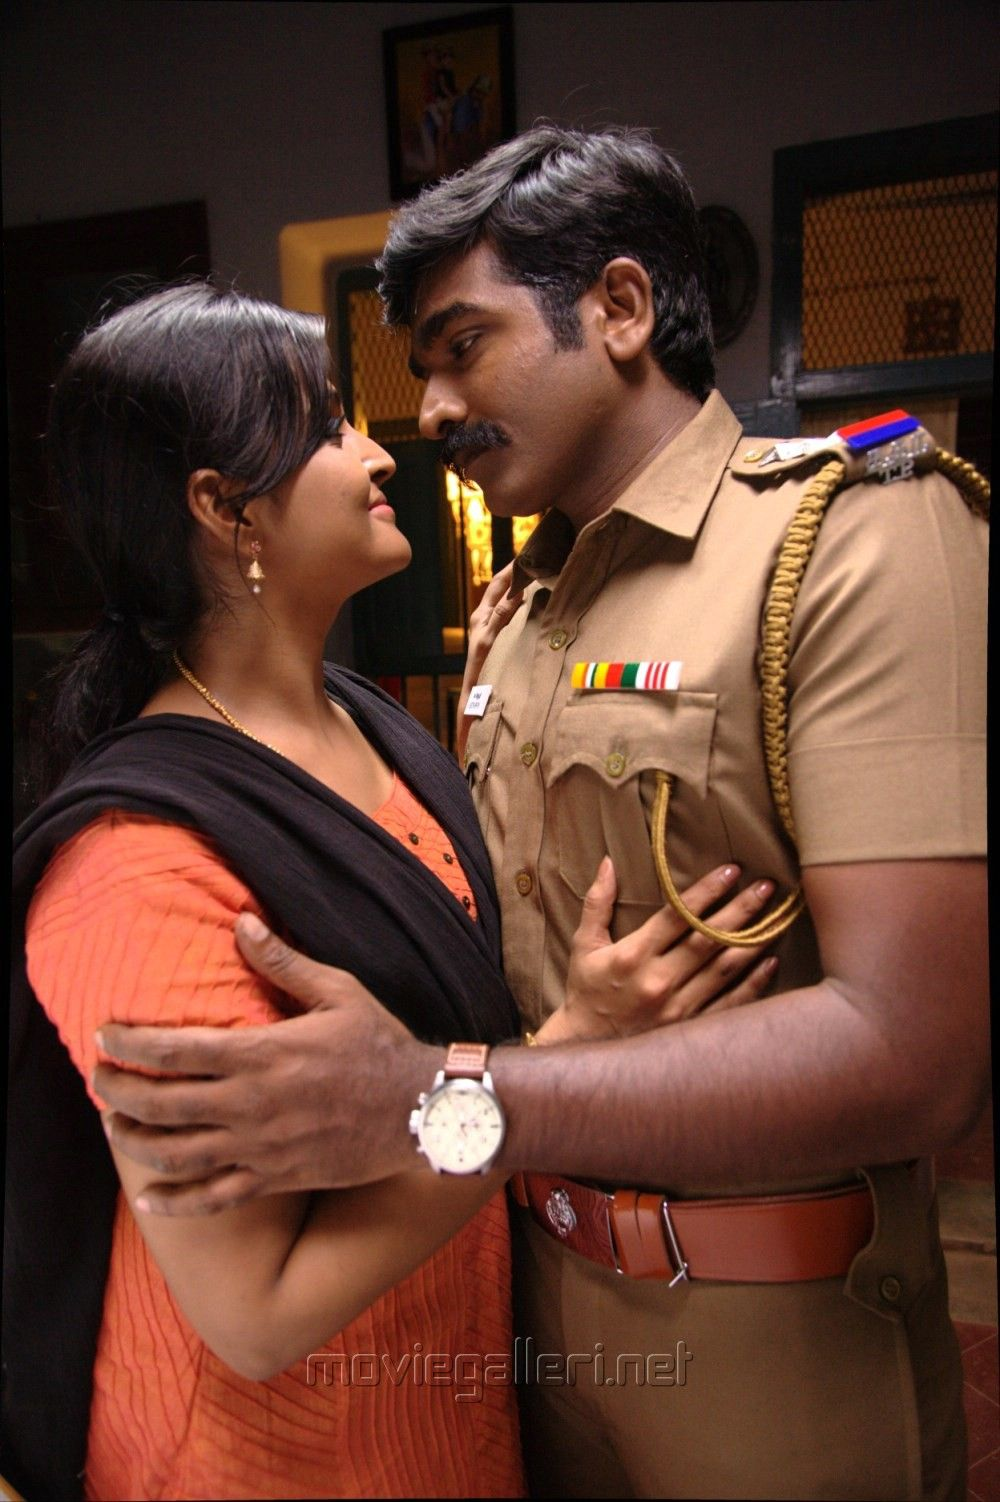 Sethupathi Movie Wallpapers Wallpaper Cave 1024 x 918 jpeg 445 kb. sethupathi movie wallpapers wallpaper